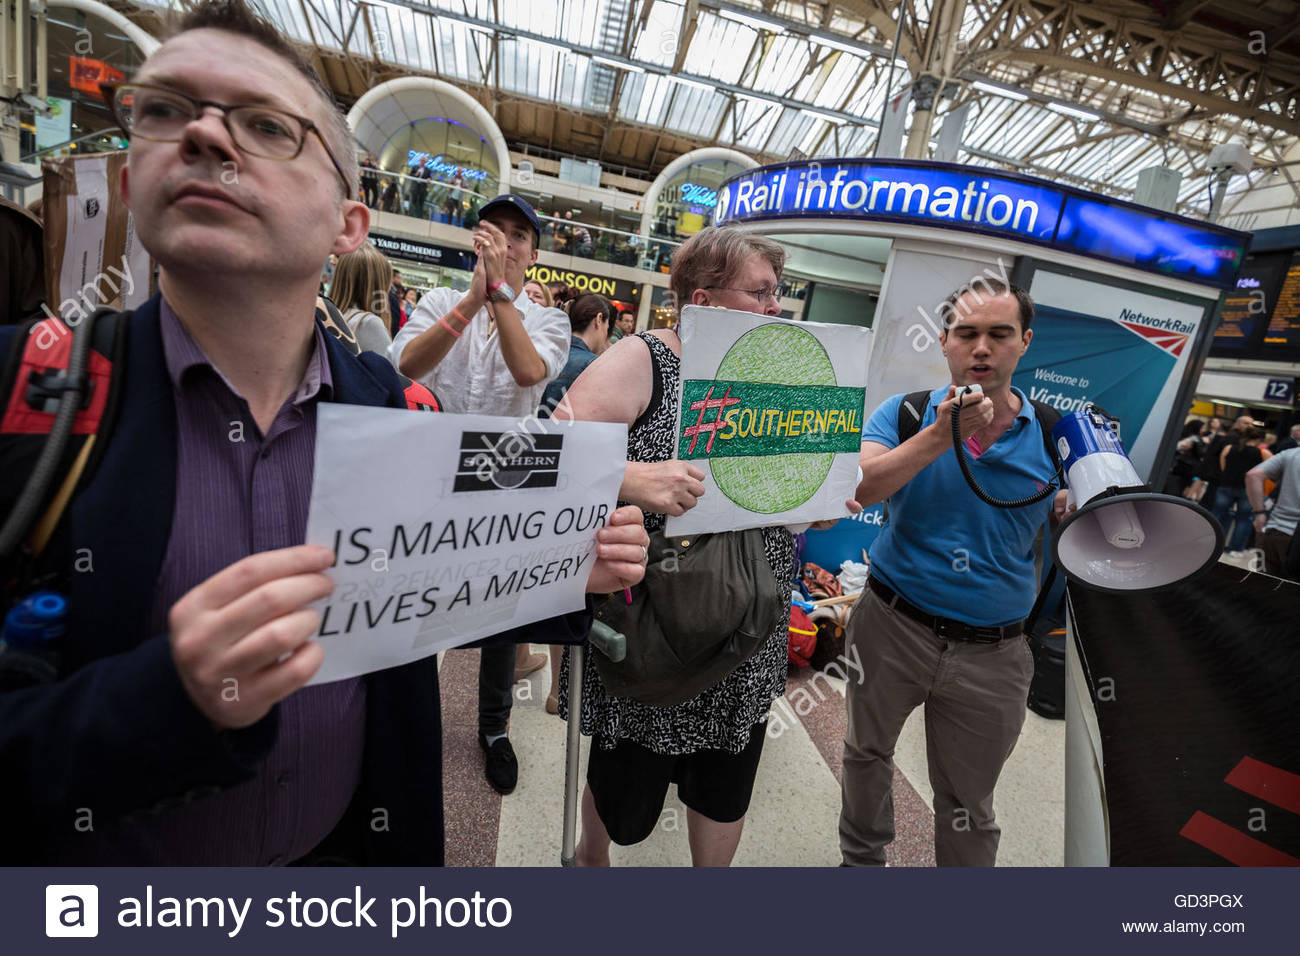 London, UK. 11th July, 2016. Commuters demonstrate against Southern Rail at London Victoria train station during Stock Photo